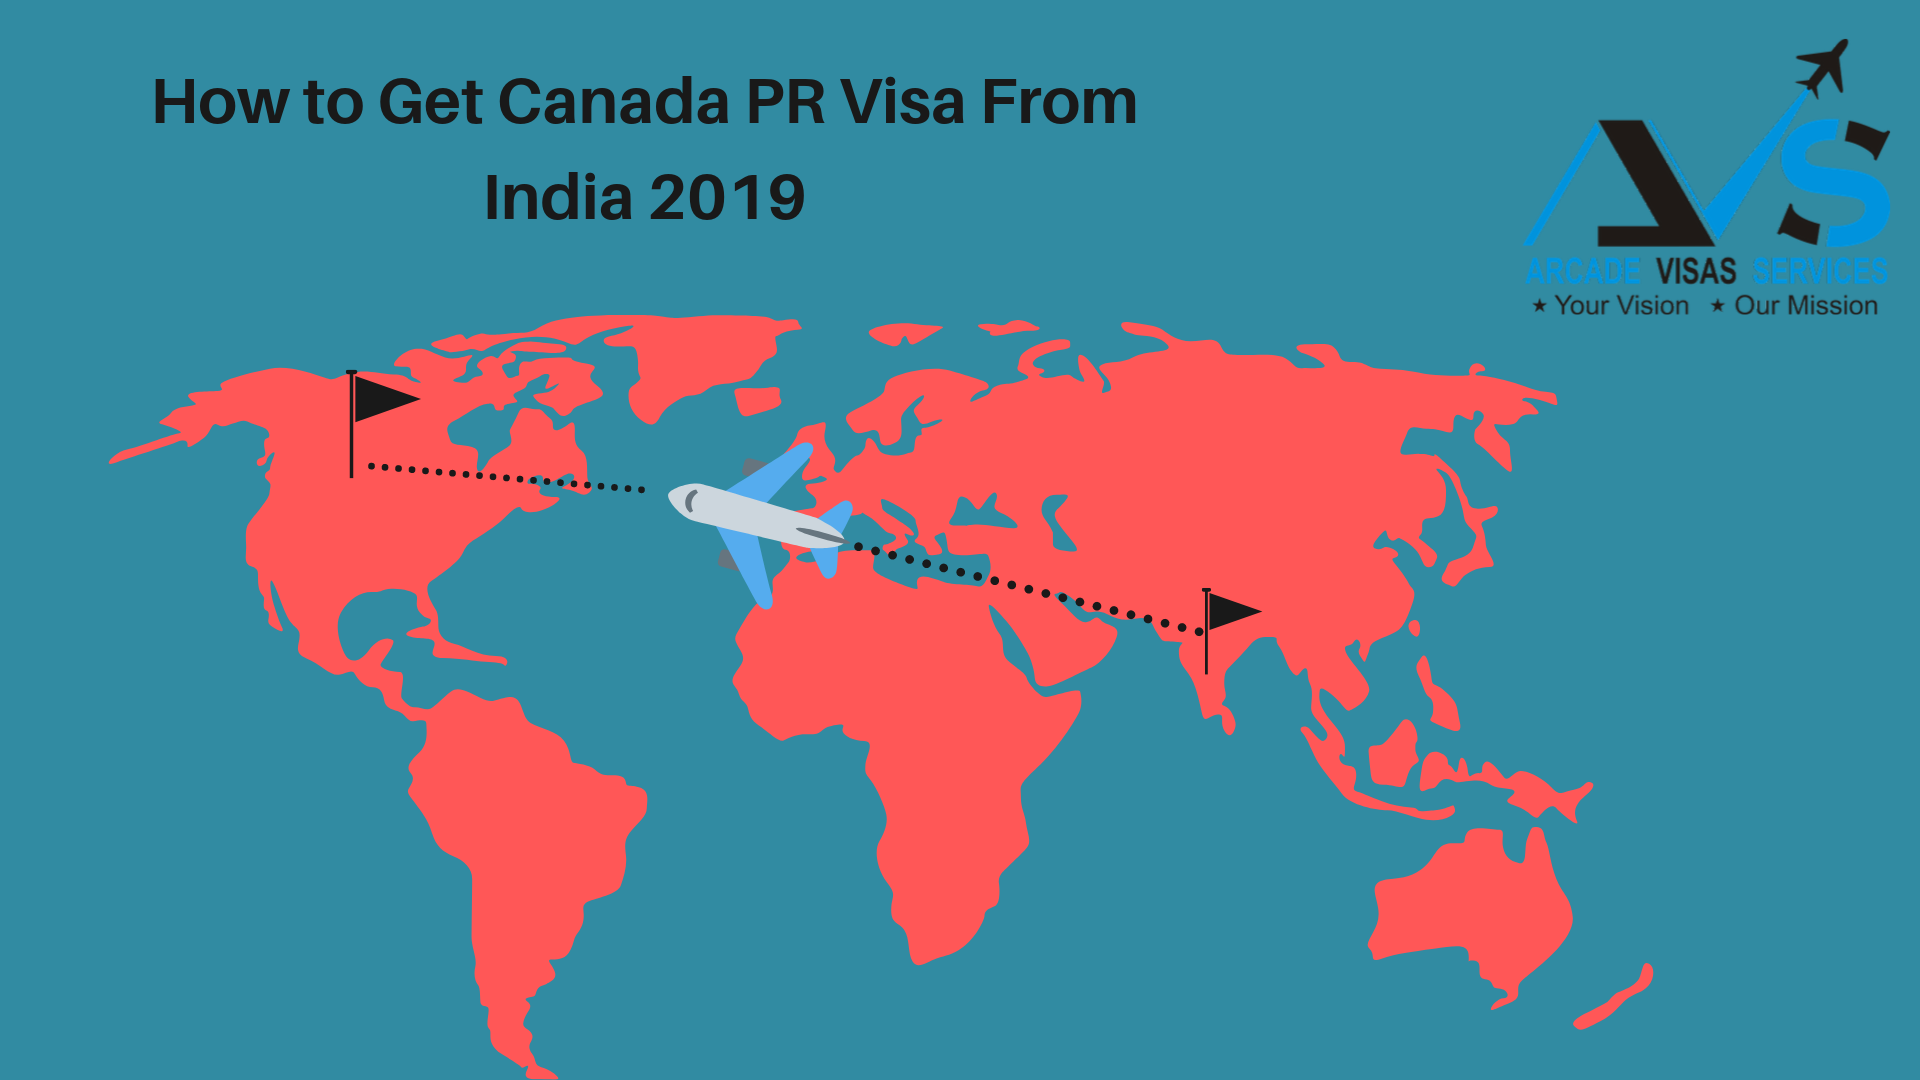 How to Get Canada PR Visa From India in 2020?